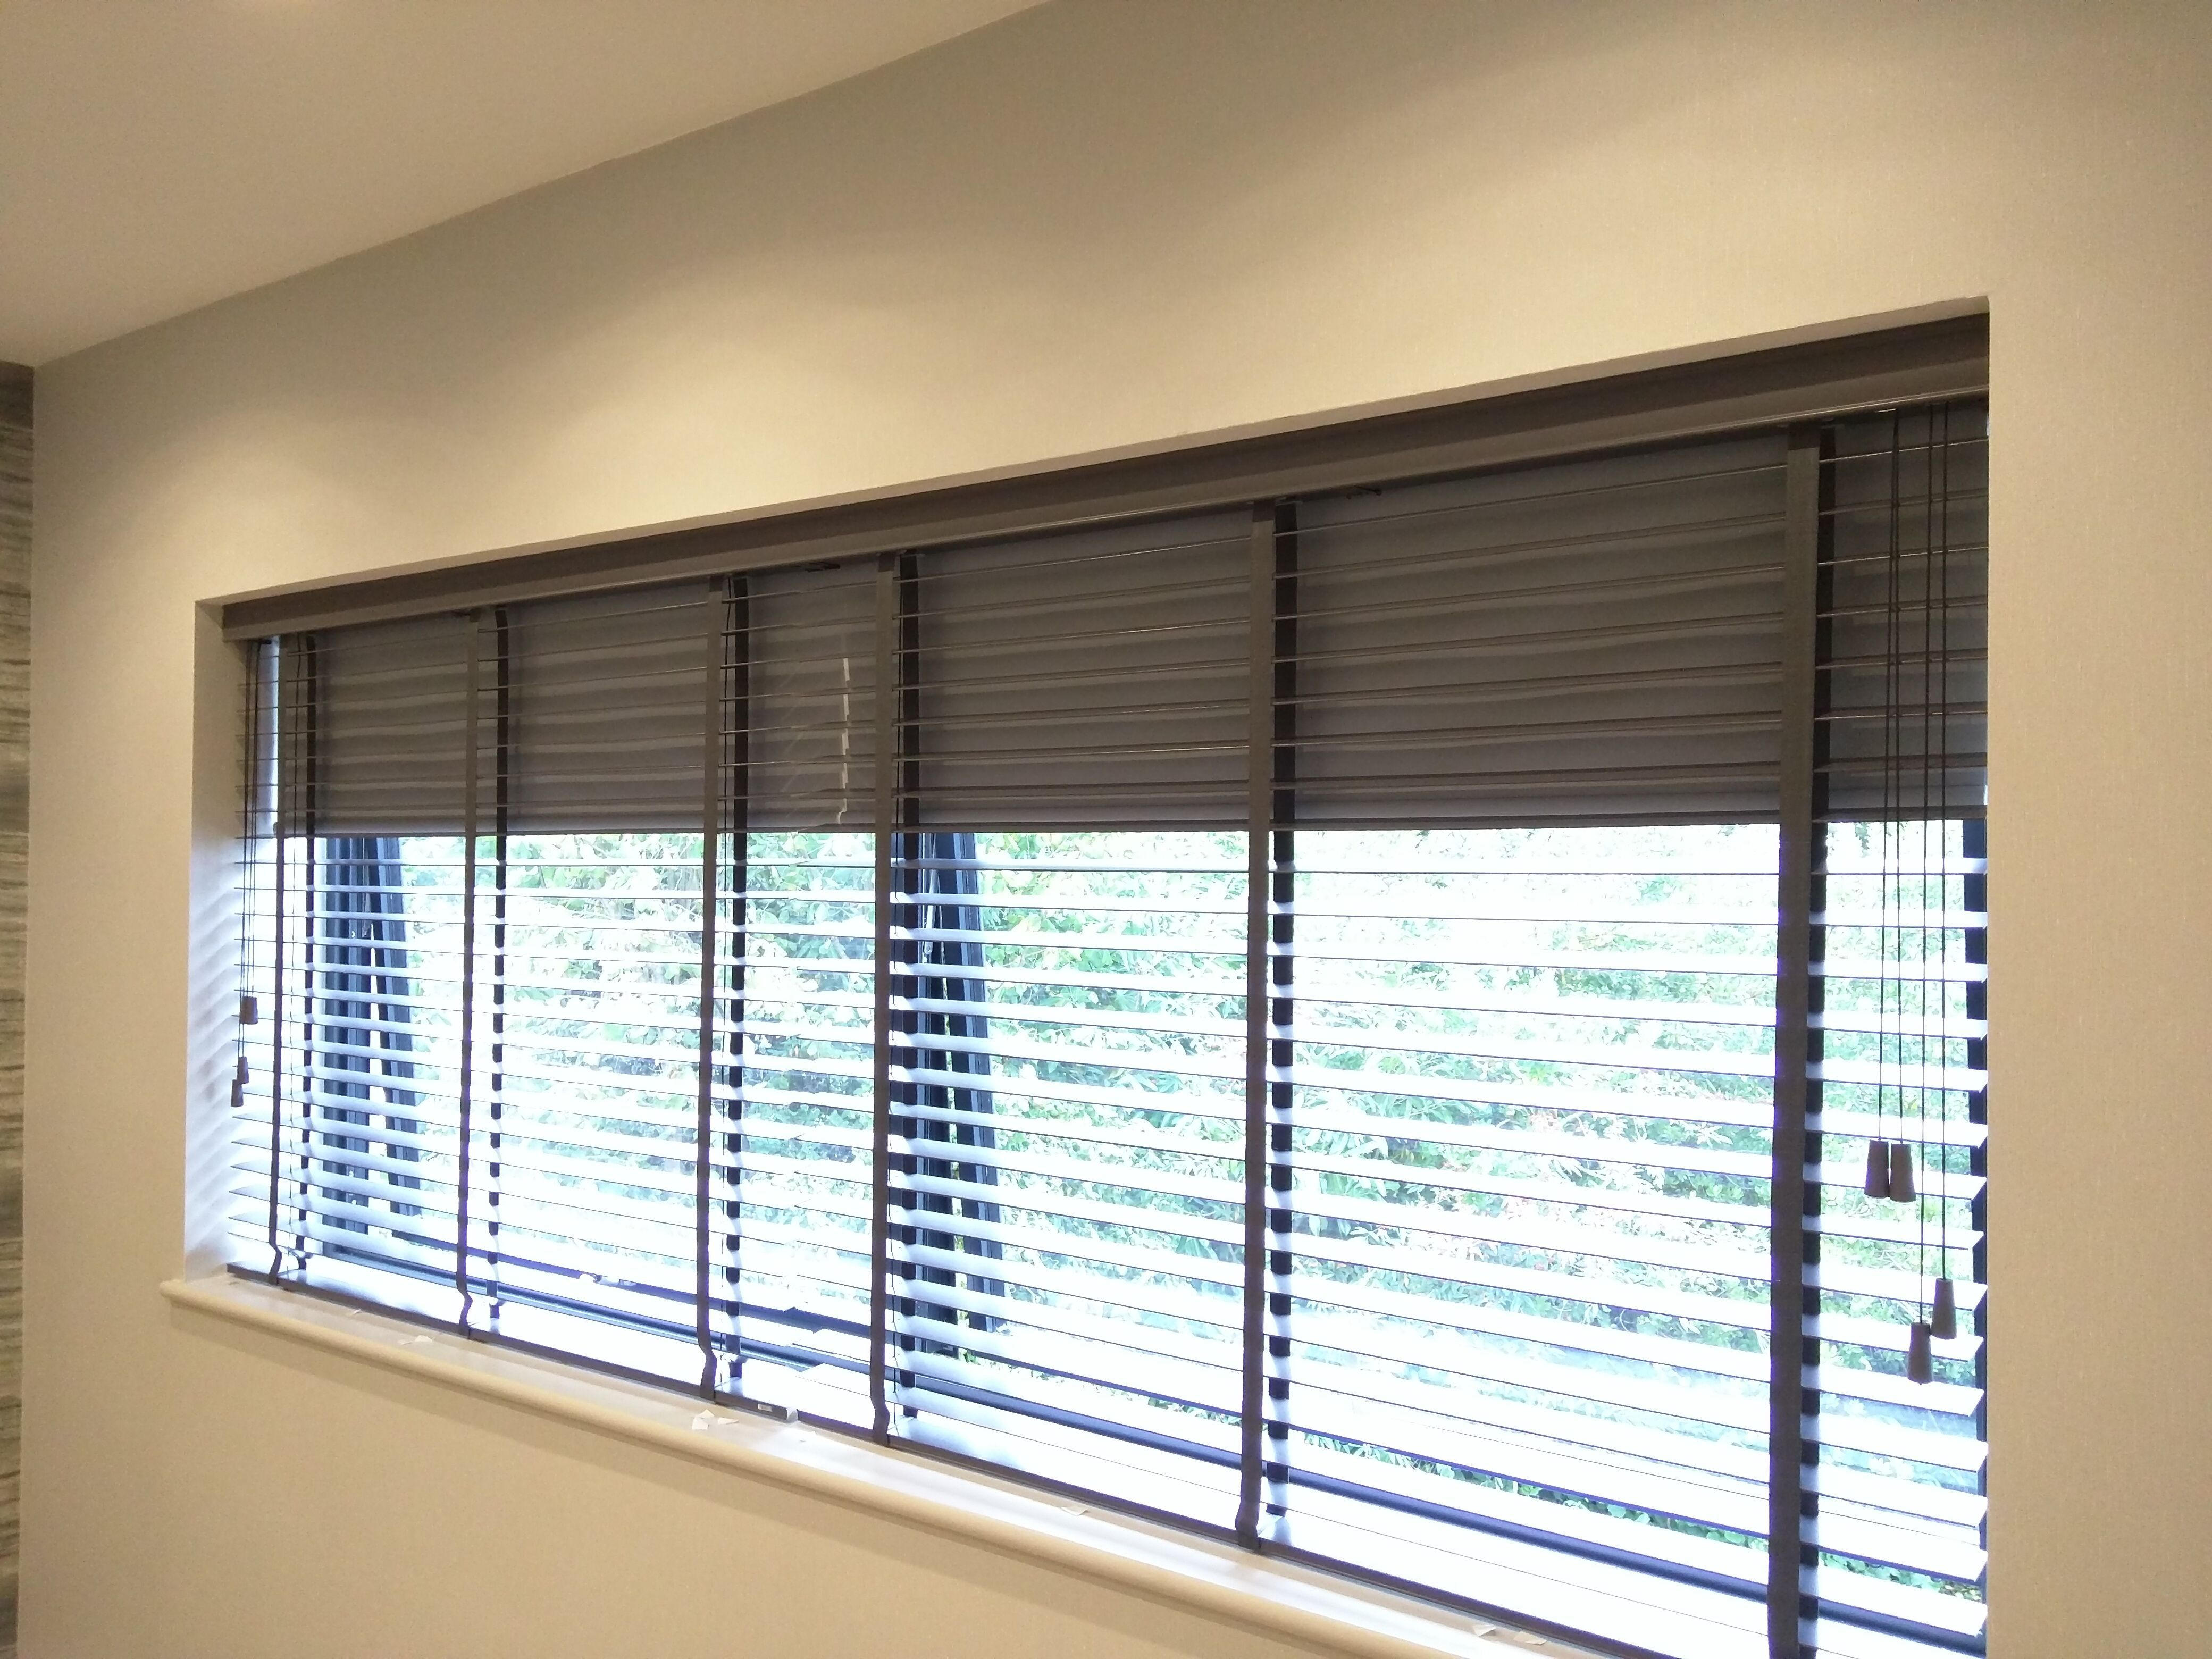 19 Prodigious White Roller Blinds Ideas With Images Blinds